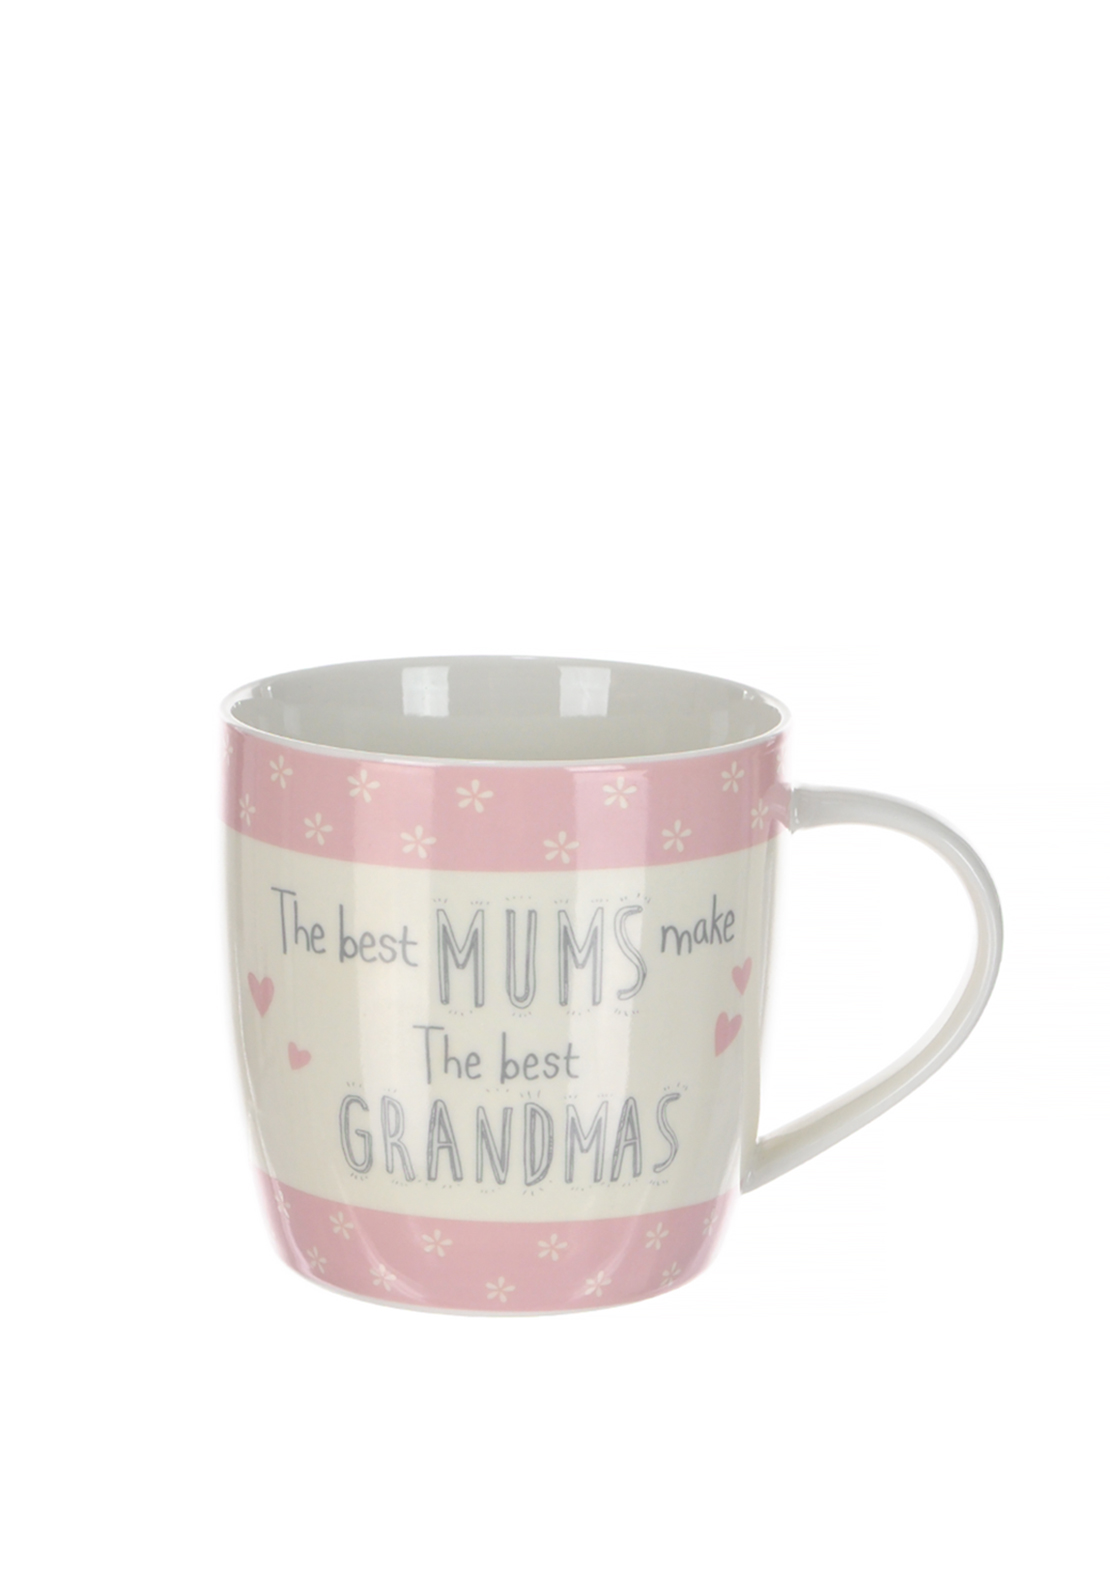 Love Life Ceramic Mug- The best MUMS make the best GRANDMAS